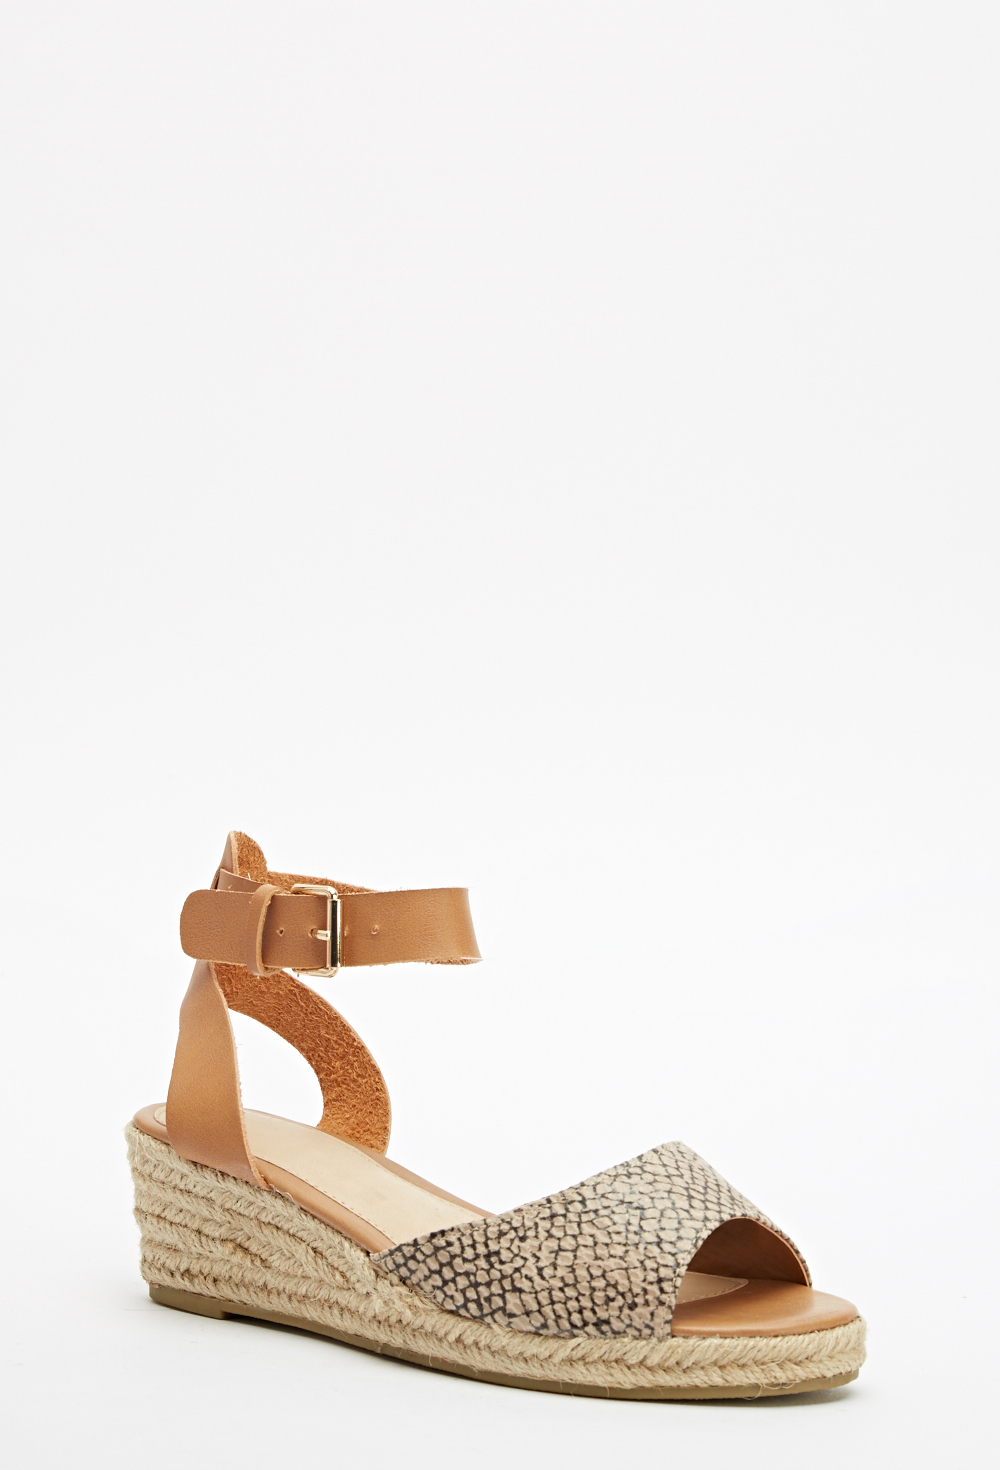 c03d1a7868d Open Toe Espadrille Wedge Sandal - Just £5